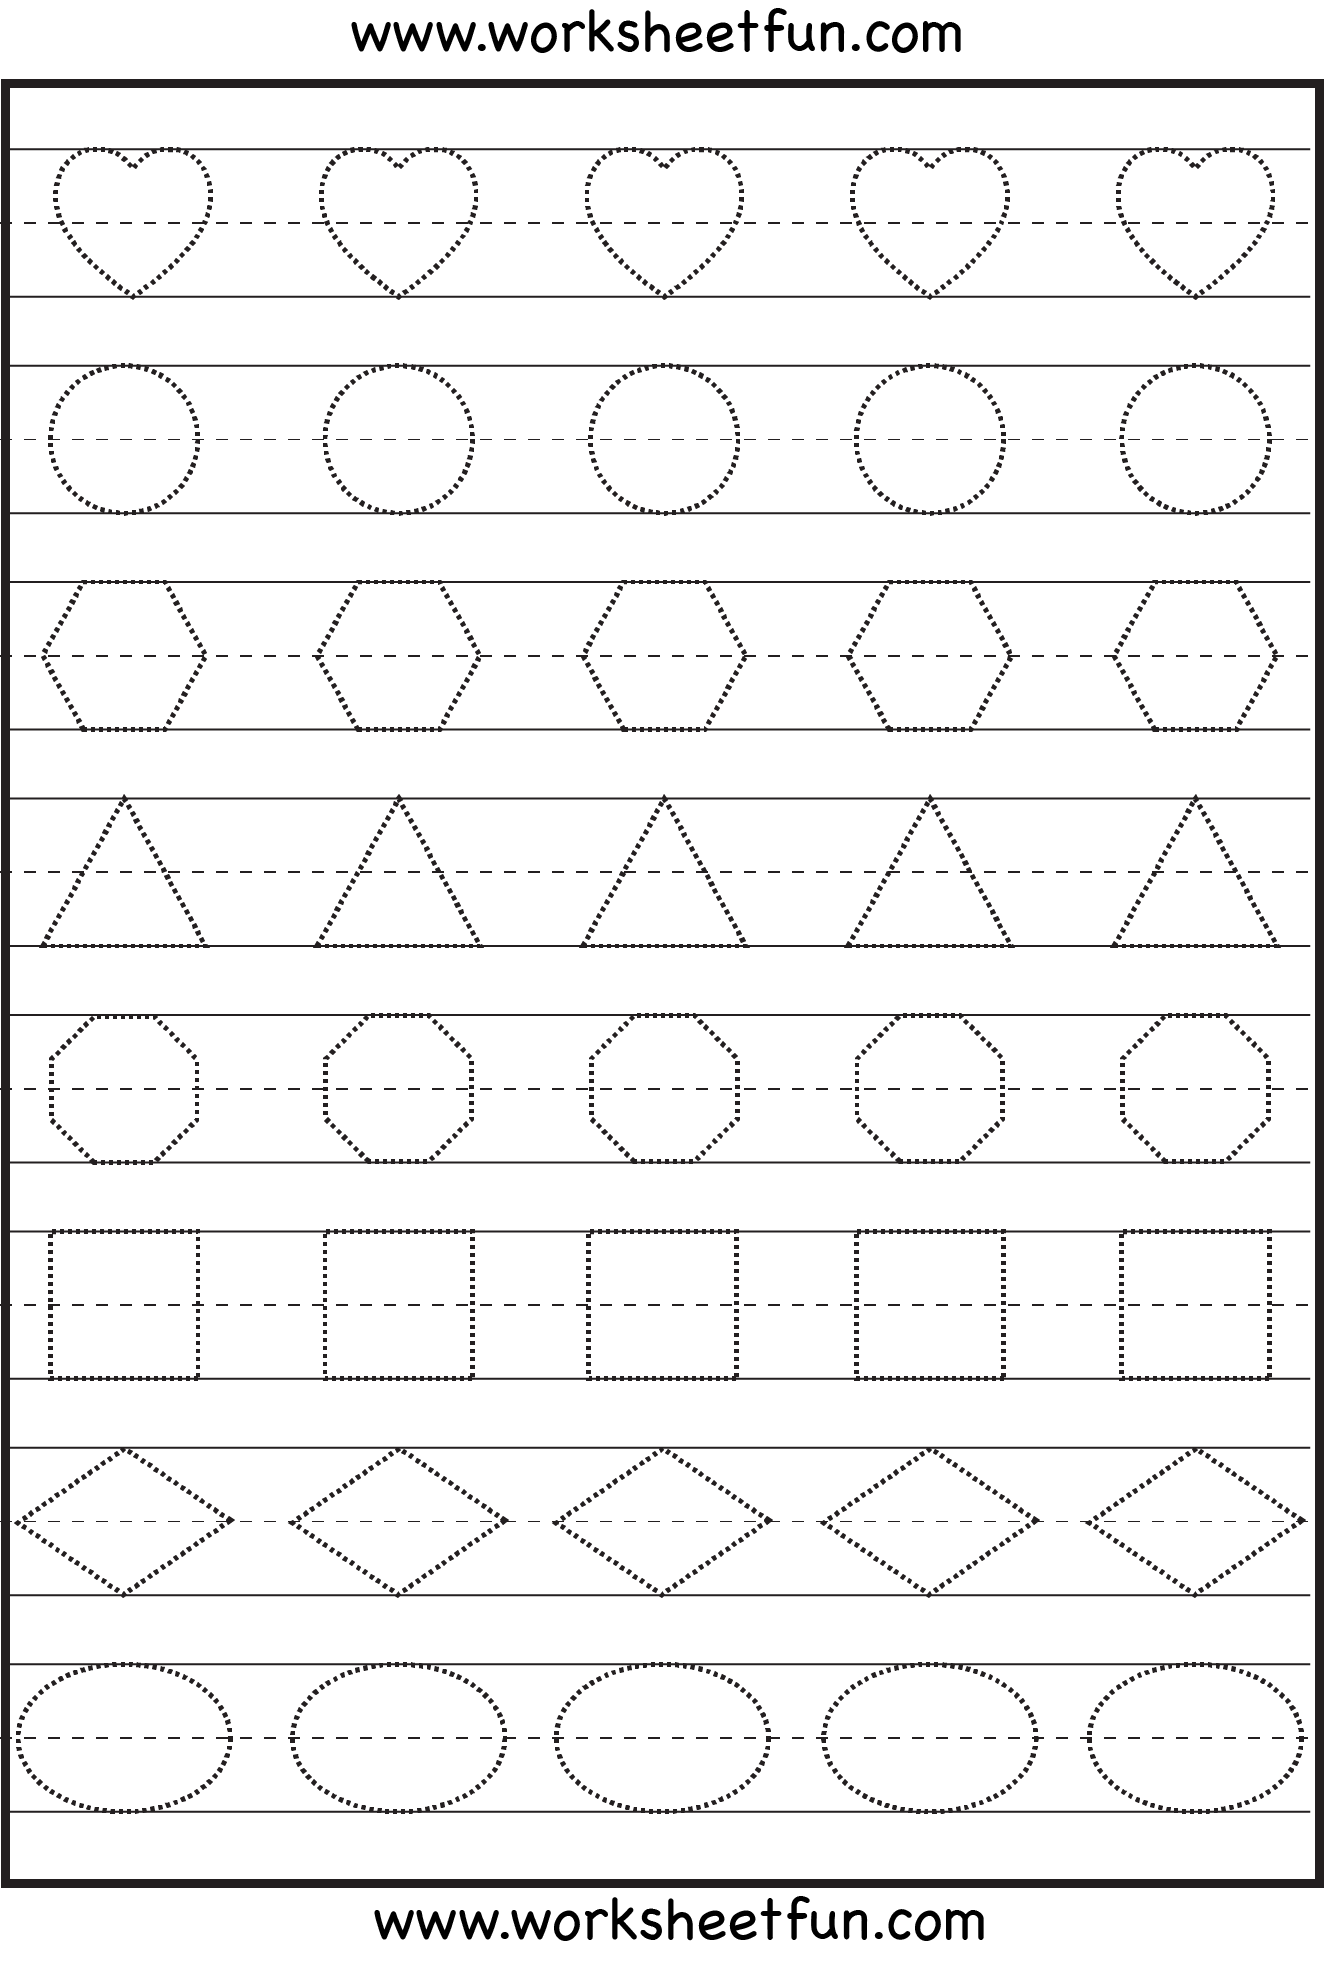 Worksheet Preschool Printable Tracing Worksheets 1000 images about school on pinterest alphabet worksheets letter b and preschool